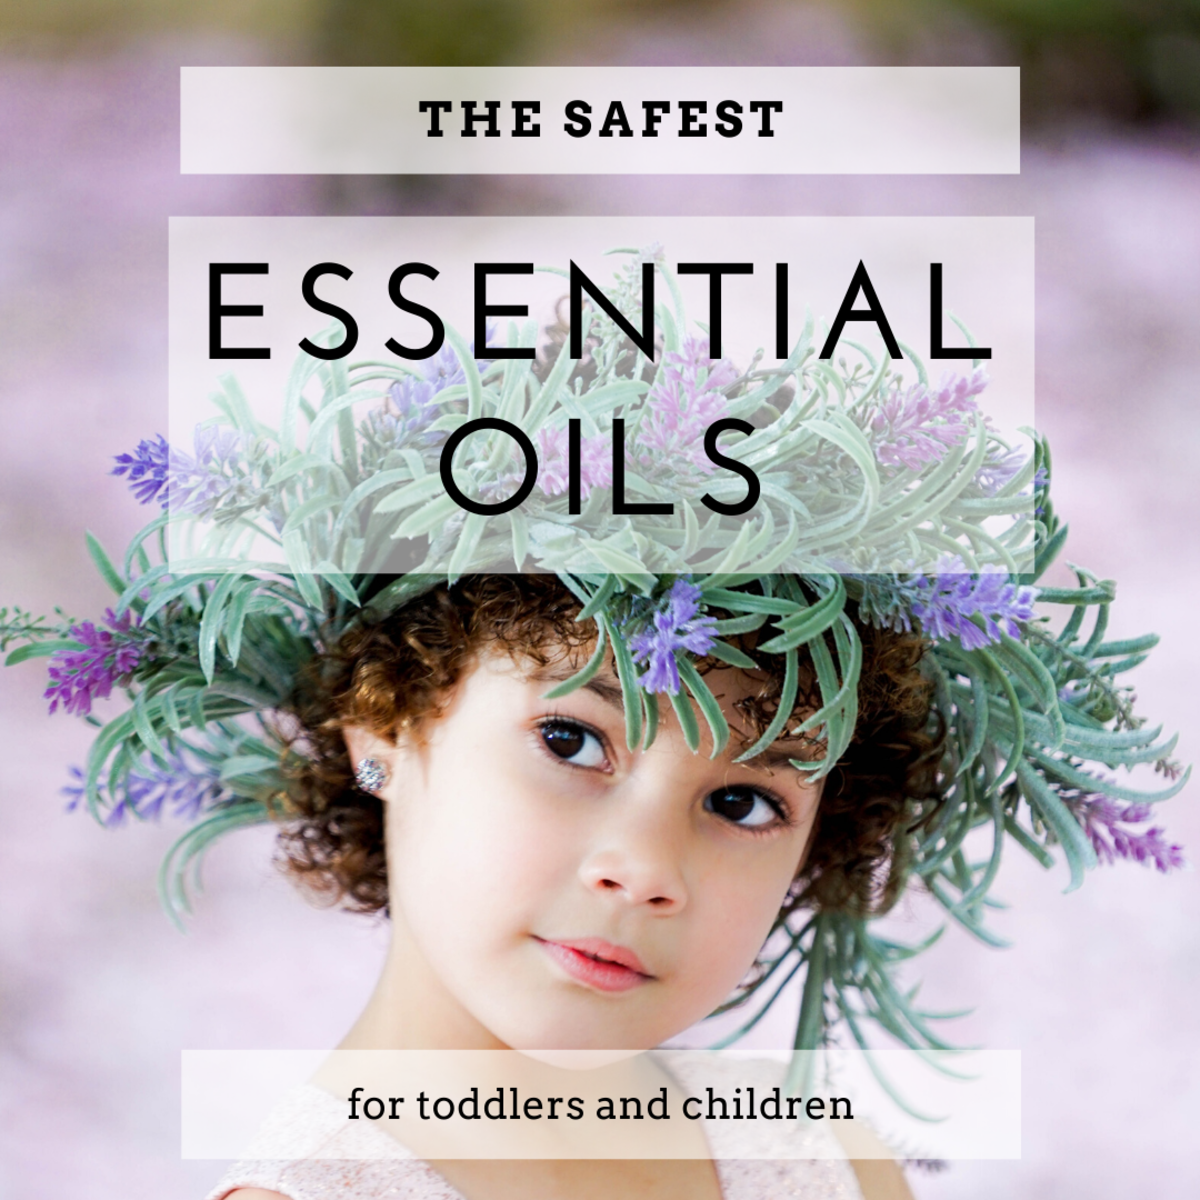 It's important to be cautious when using oils for aromatherapy or skin with children.